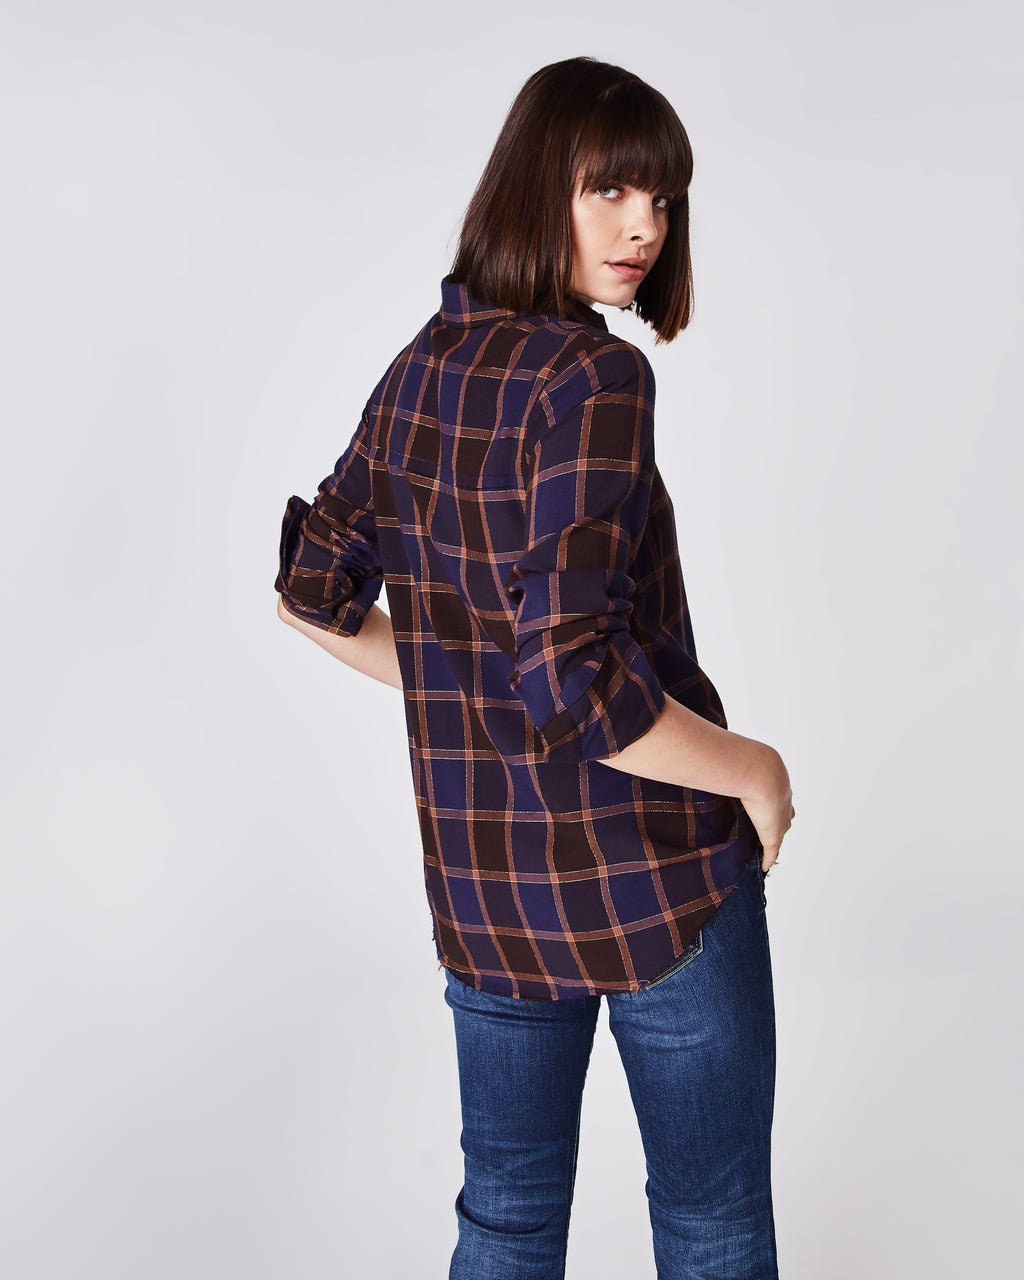 BI10148 - BOYFRIEND PLAID BUTTON DOWN SHIRT - tops - shirts - Your man's shirt, but better. This button down plaid top features a tailored collar and cuffed sleeves that can be worn full length or rolled up.Unlined.